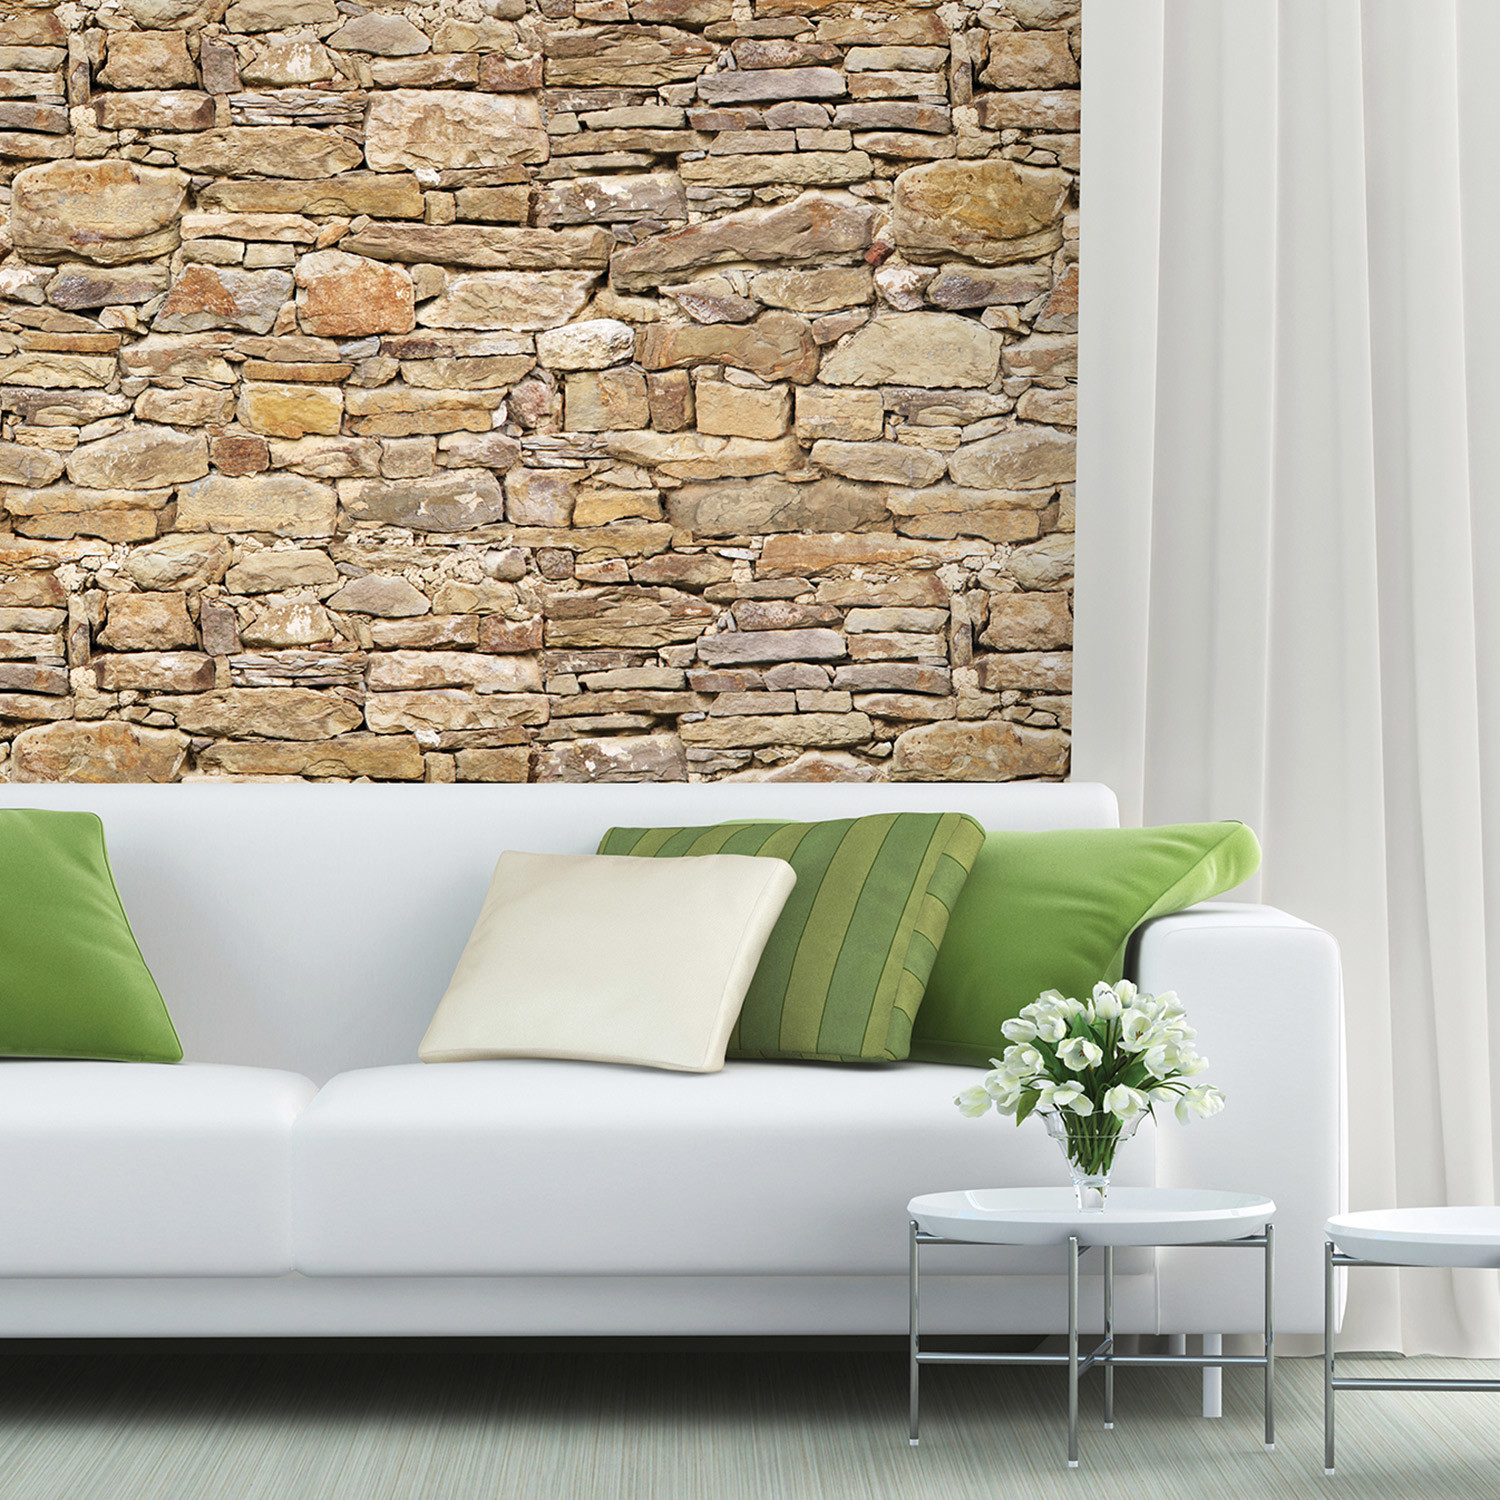 Stone wall mural brewster home fashions touch of modern for Brewster wall mural